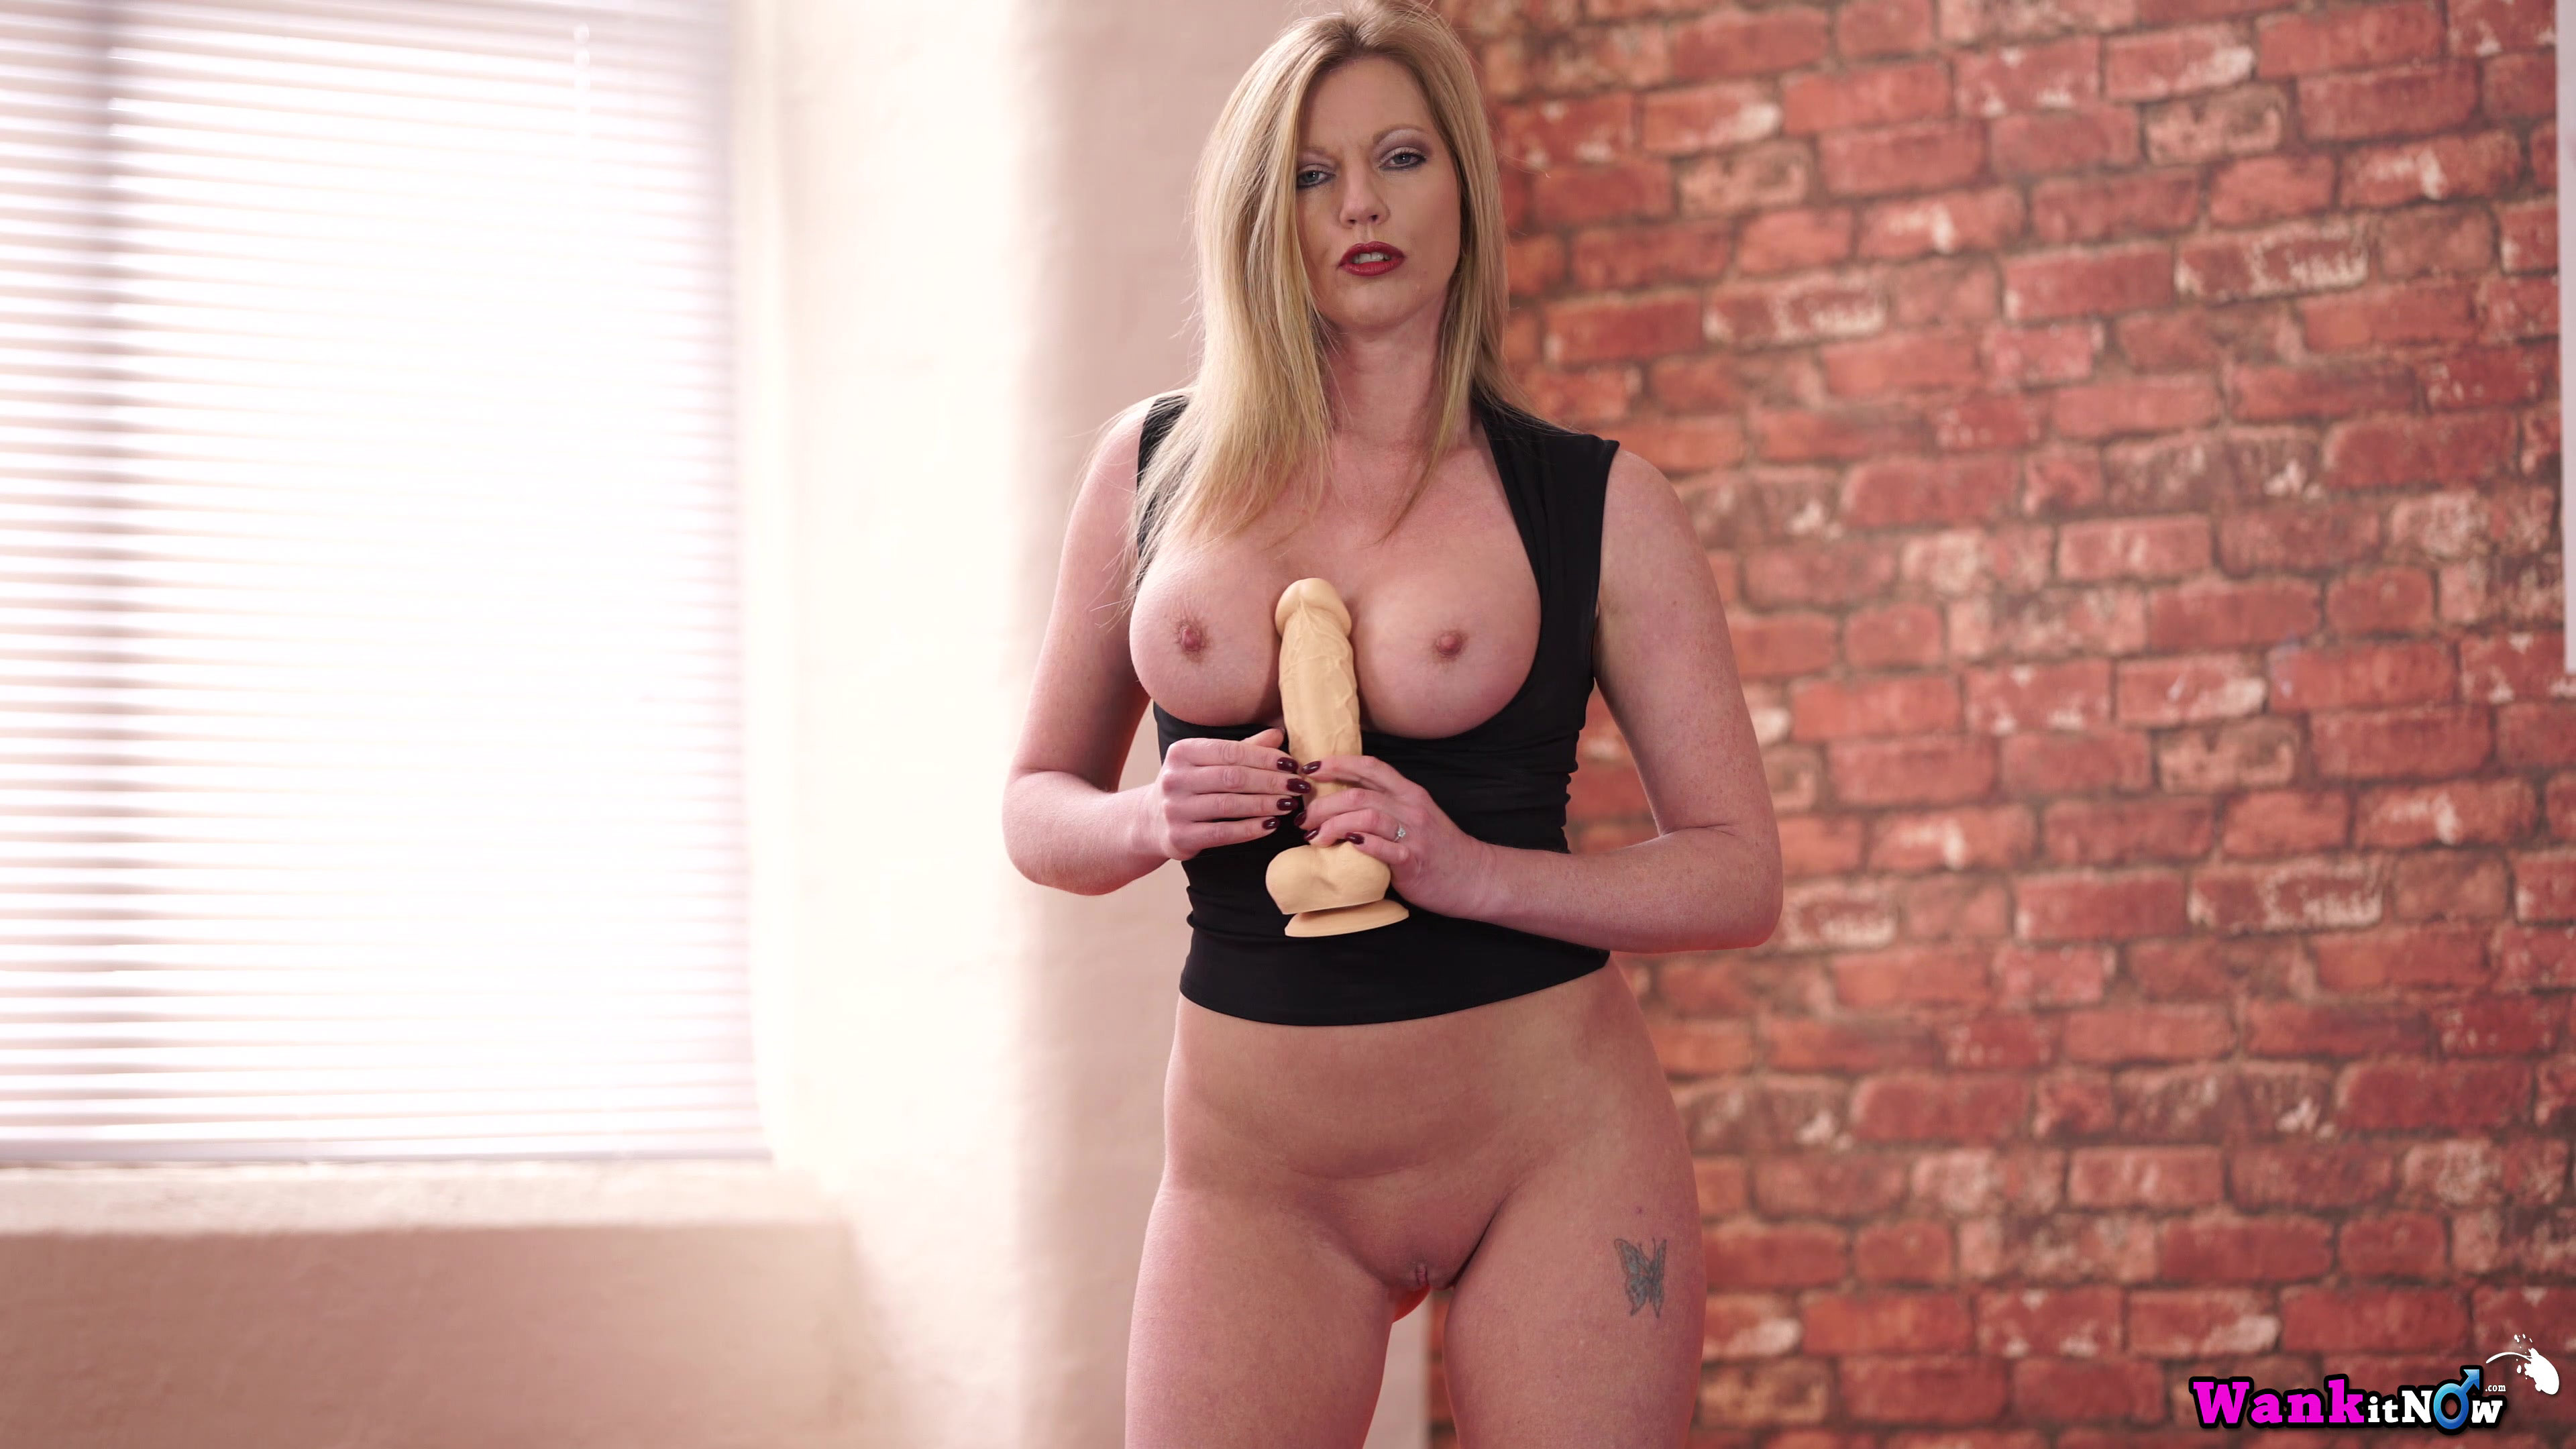 Holly Kiss - Pathetic Cum Eater - Free photos of naked ...